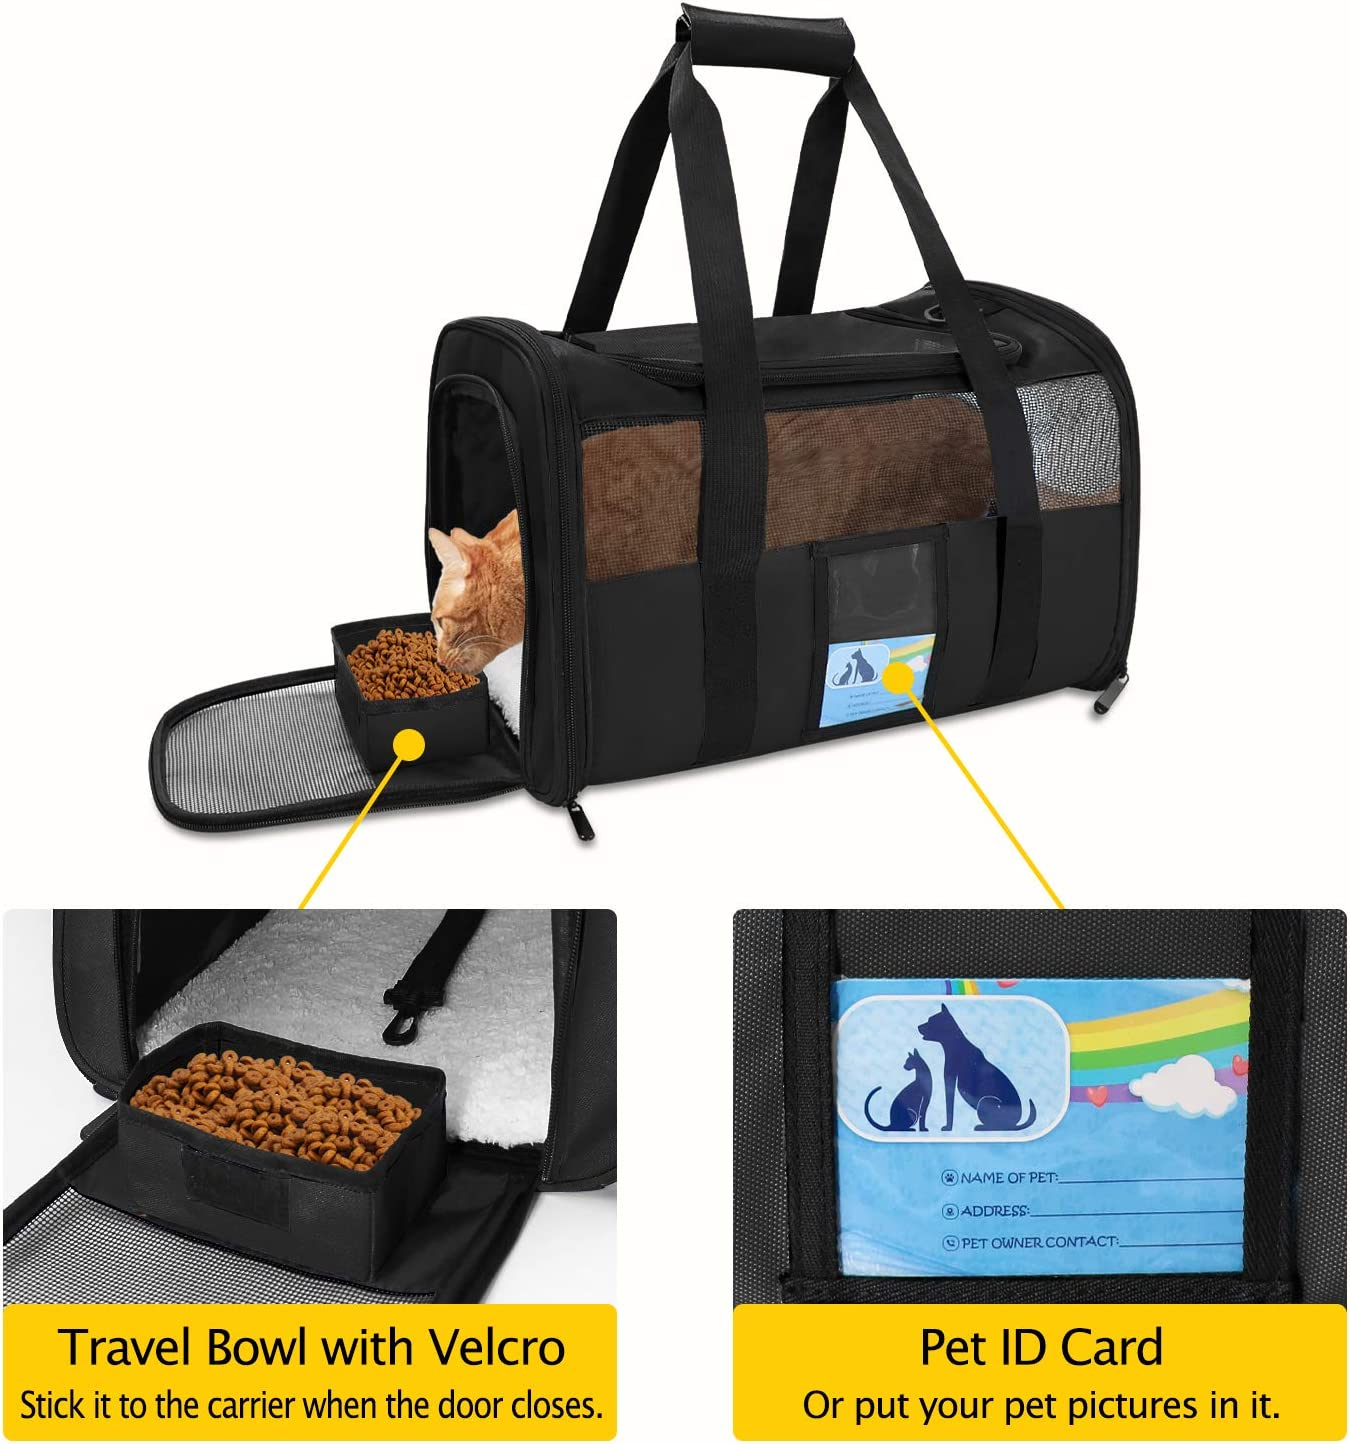 Soft Dog Carriers for Small Dogs Medium Dogs Cat Carriers for Medium Cats Small Cats Puppy Carrier TSA Approved Pet Carrier for Cats Dogs of 15 Lbs Refrze Pet Carrier Airline Approved